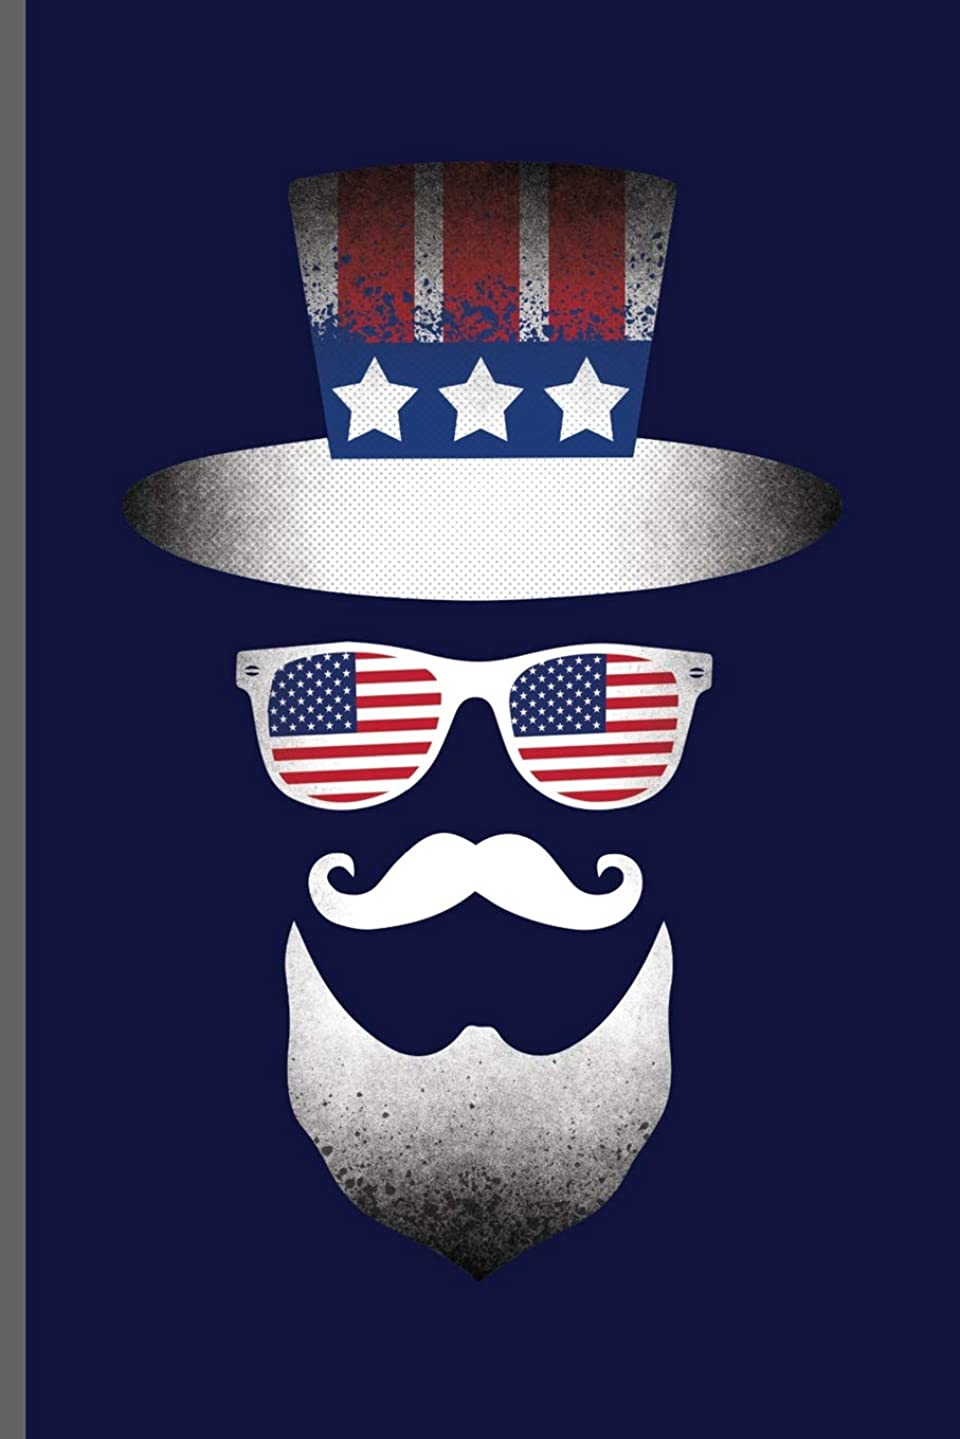 USA Hat Glasses And Mustache: American Flag USA Independence Day  notebooks gift (6